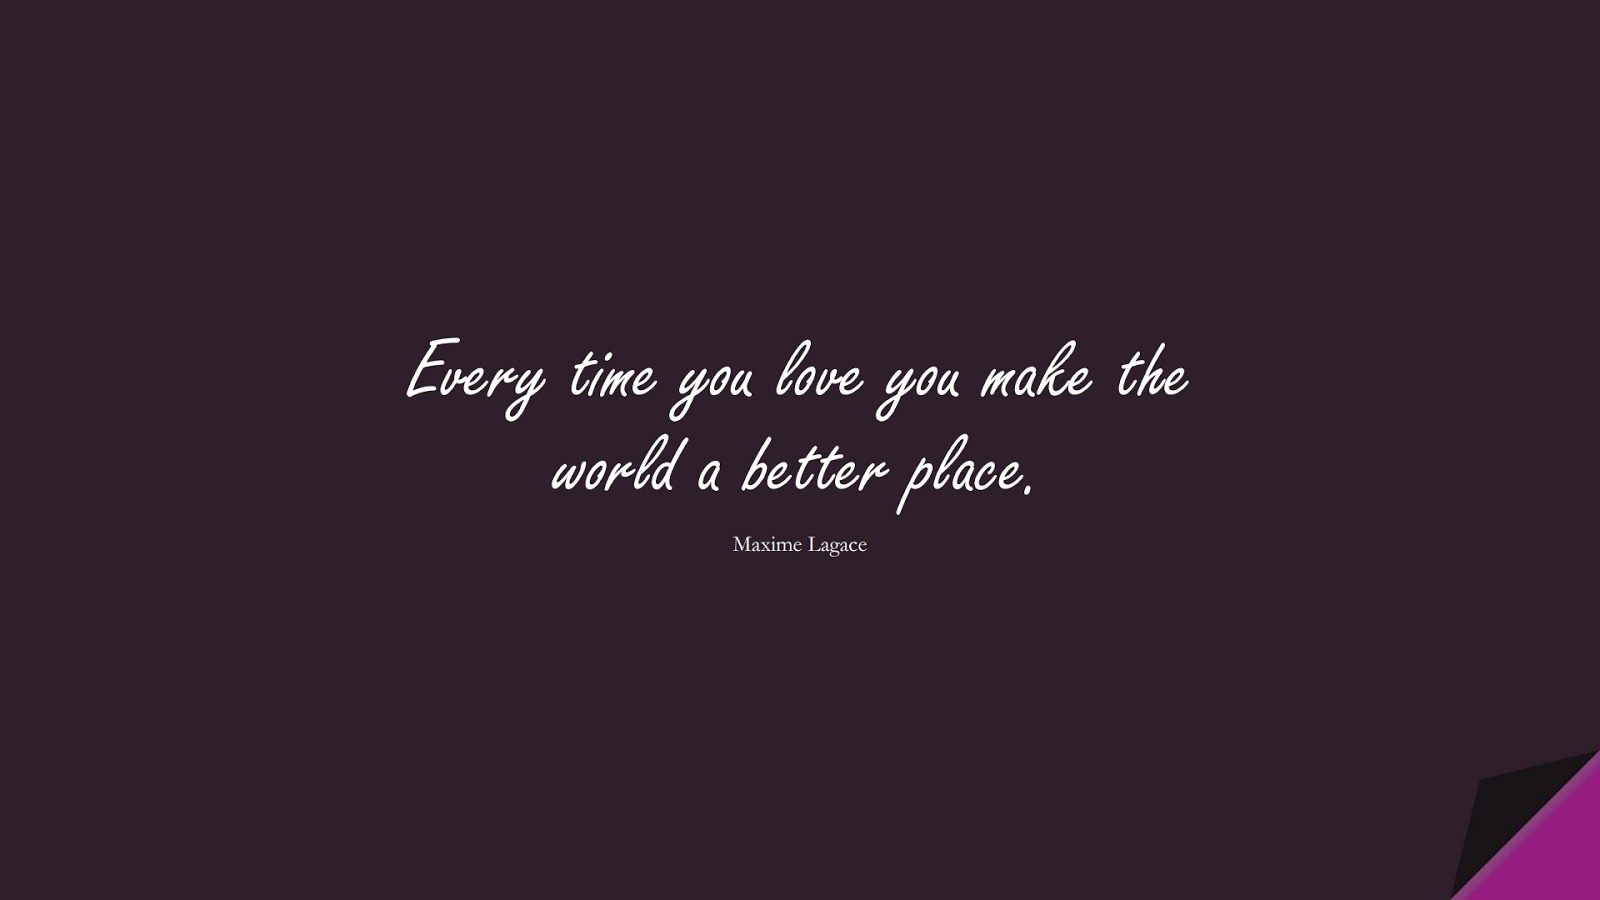 Every time you love you make the world a better place. (Maxime Lagace);  #LoveQuotes